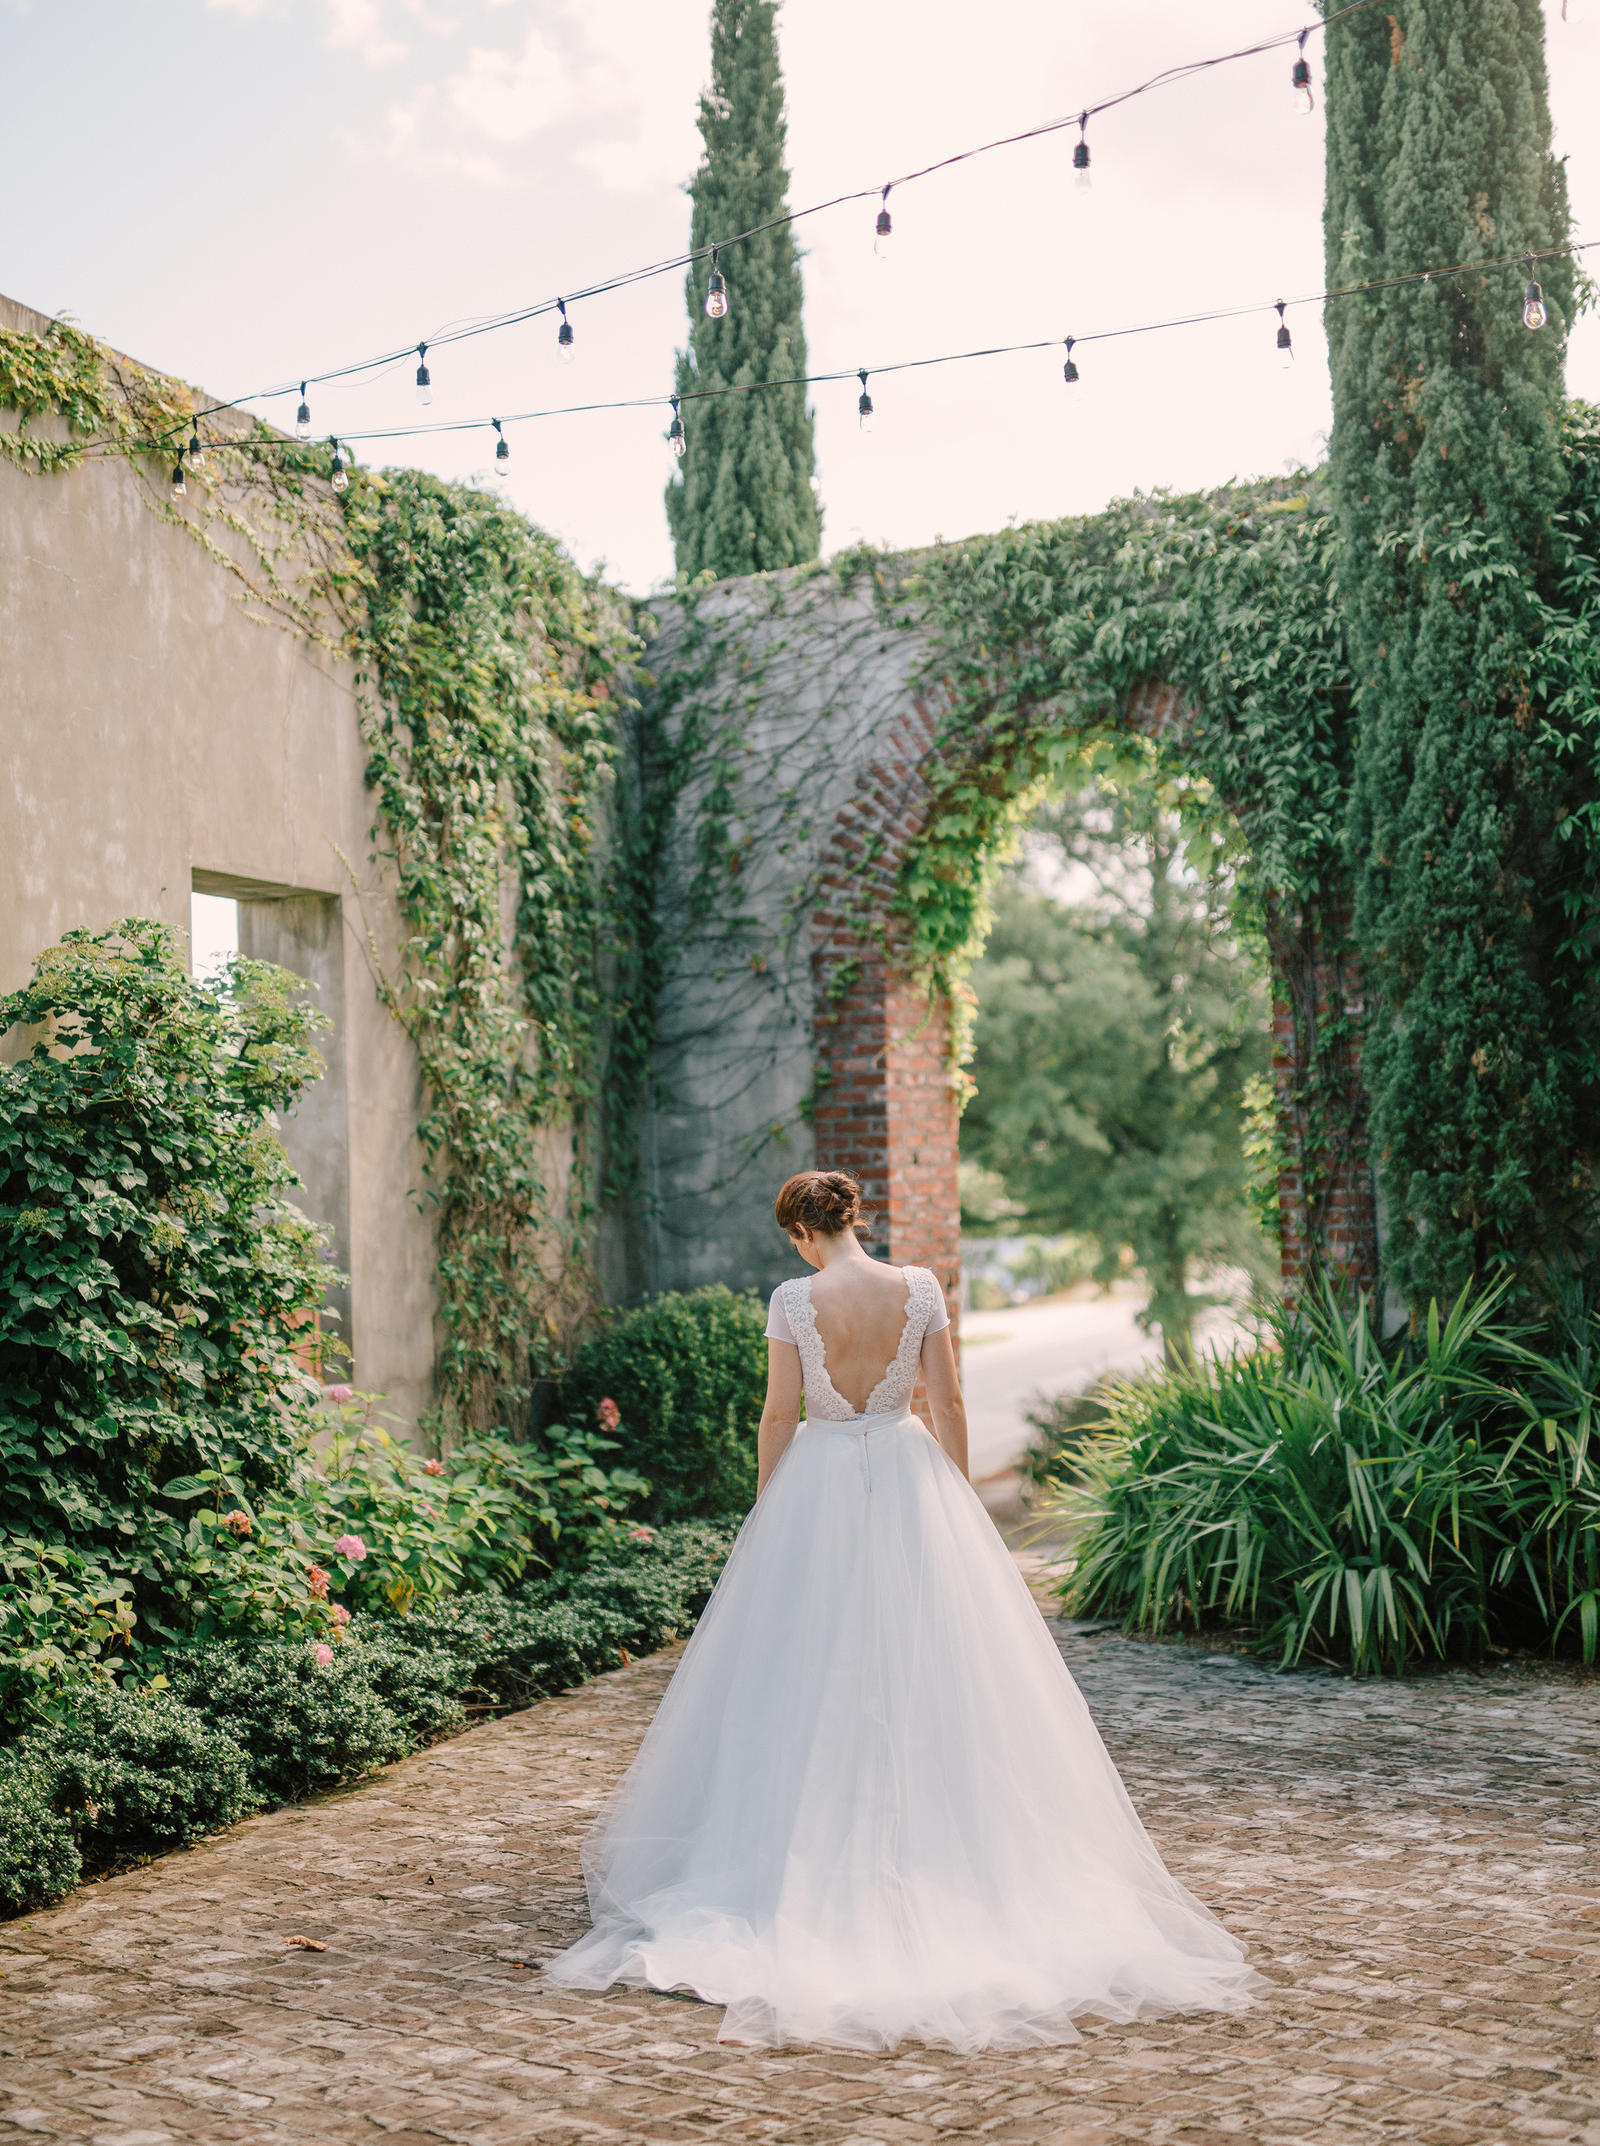 Wedding Photography | A bride stands in the courtyard with stringed lights over head.